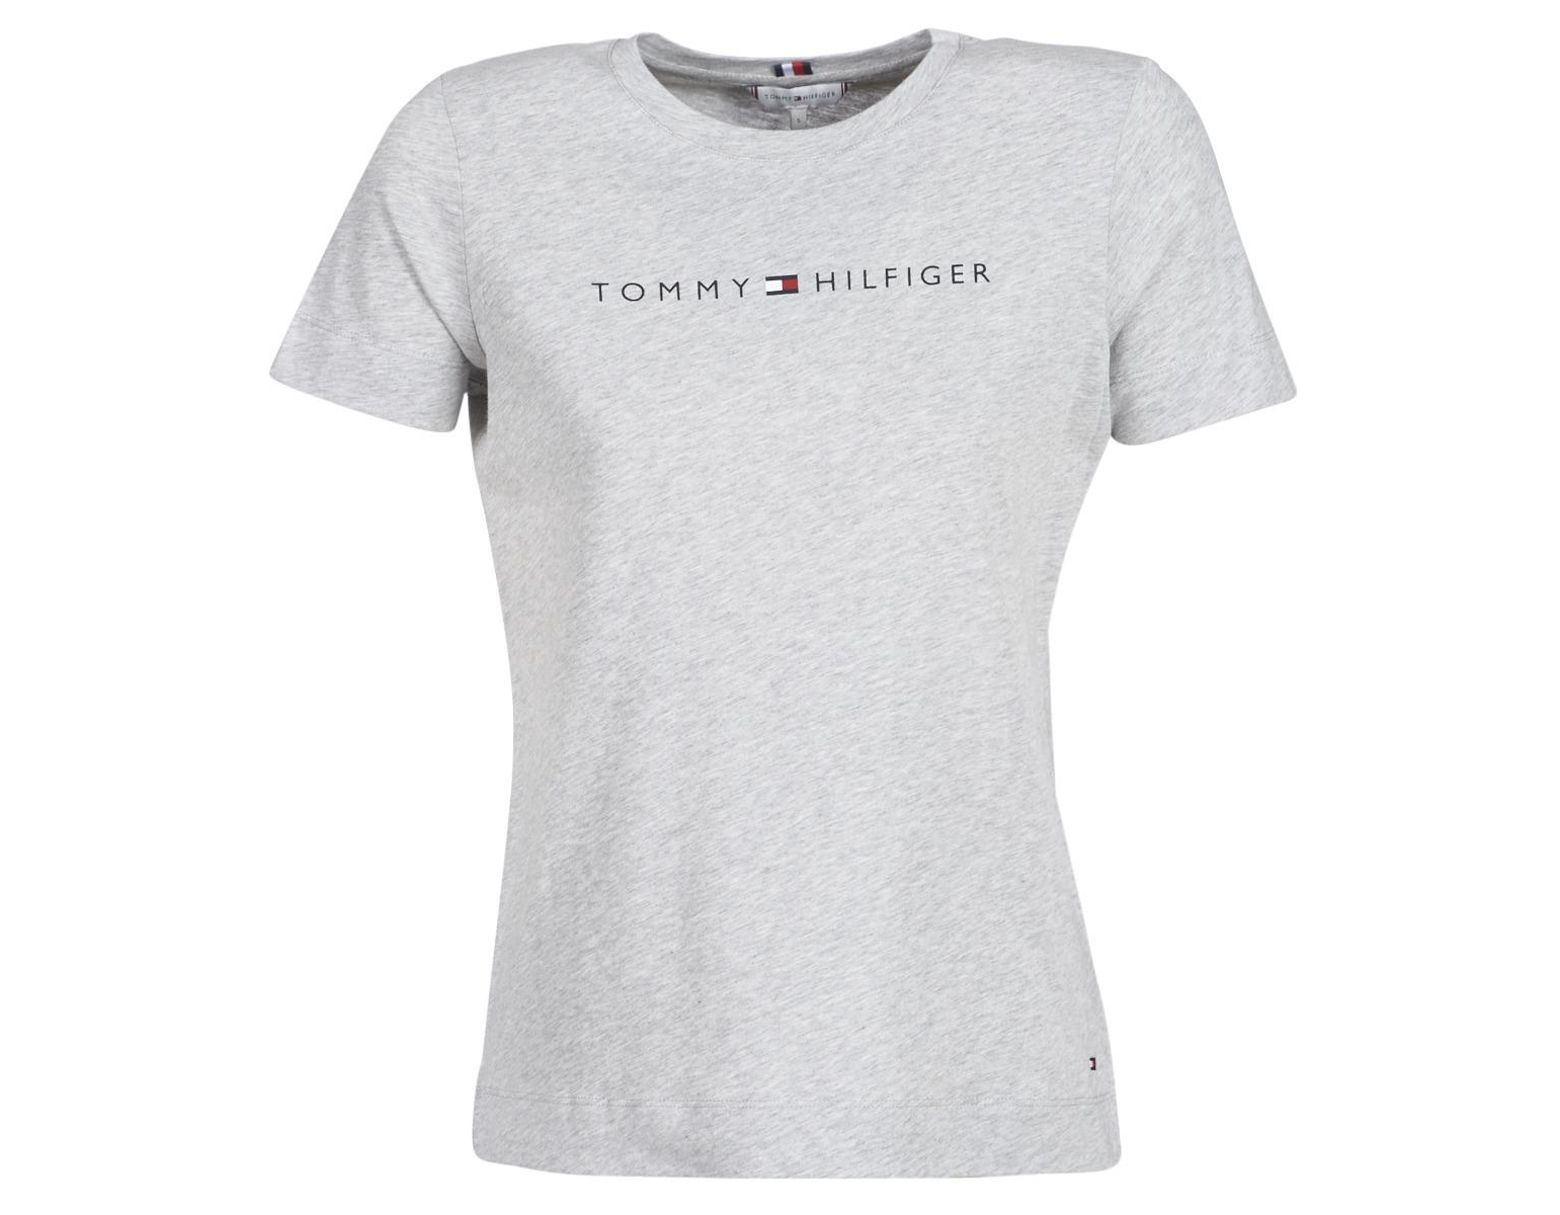 78a0828e8 Tommy Hilfiger Essential Hilfiger Crew Neck Tee Women's T Shirt In Grey in  Gray - Lyst